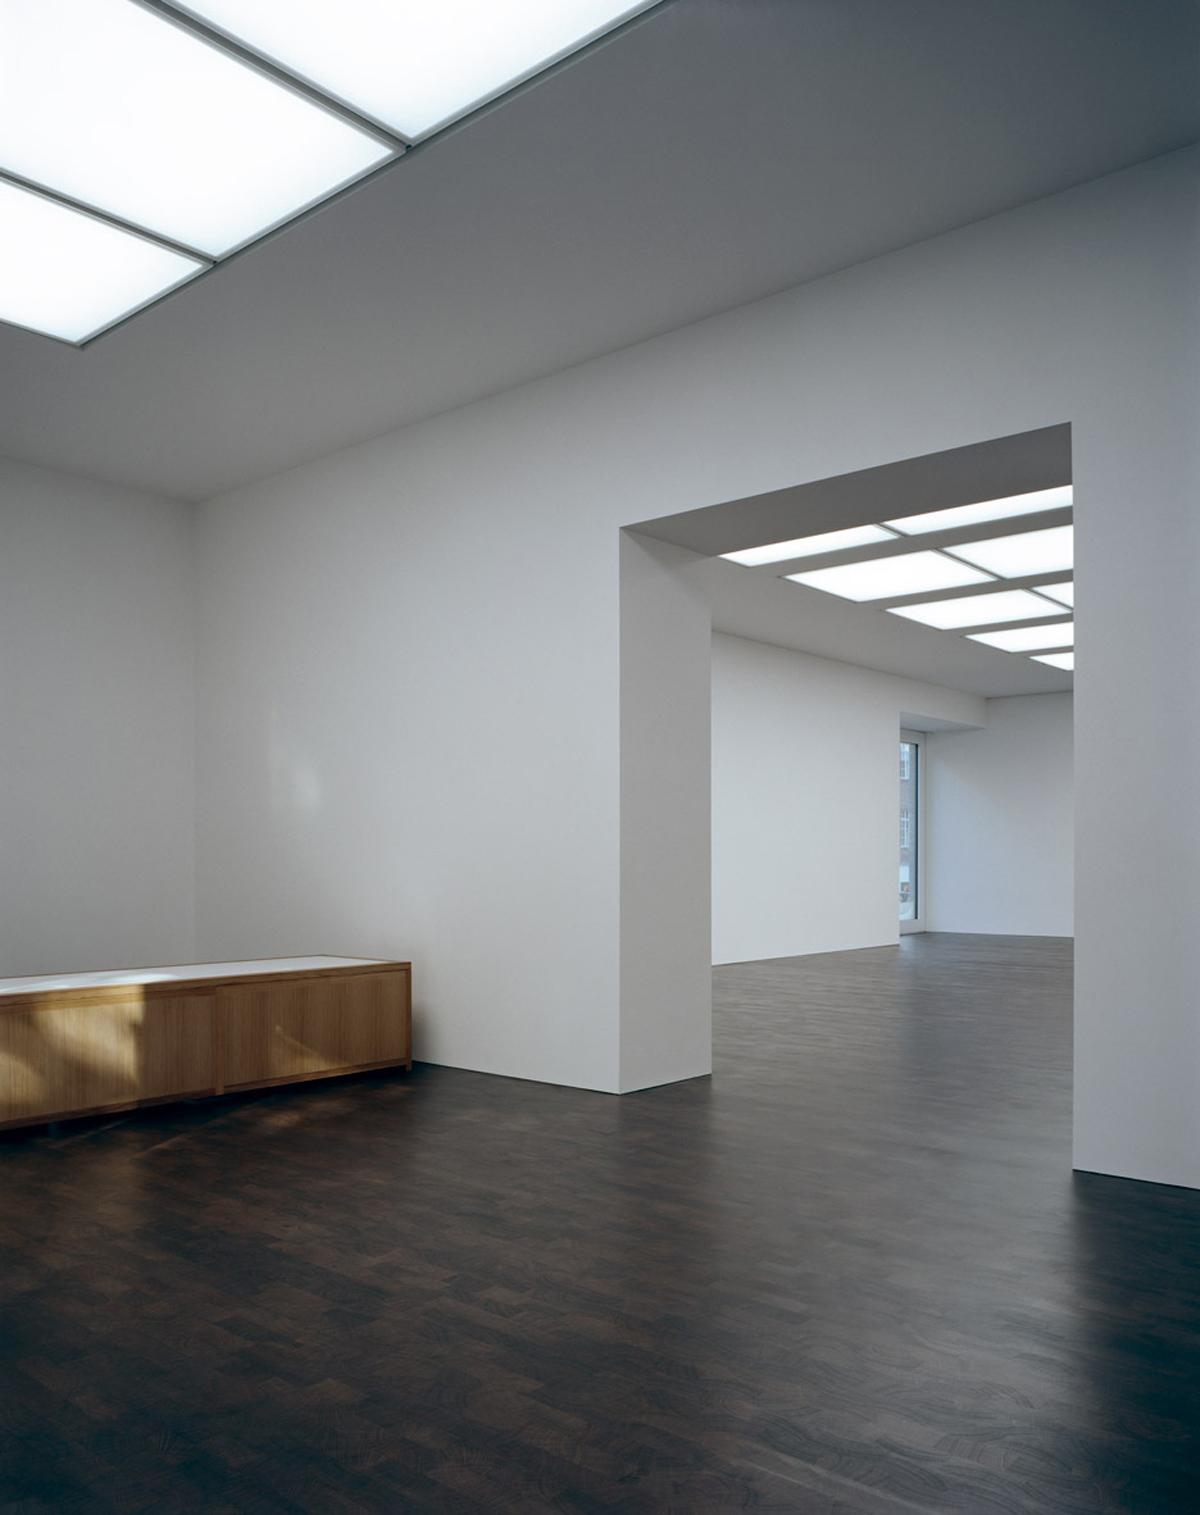 The Gagosian Grosvenor Hill in Mayfair is Caruso St John's seventh collaboration with Gagosian